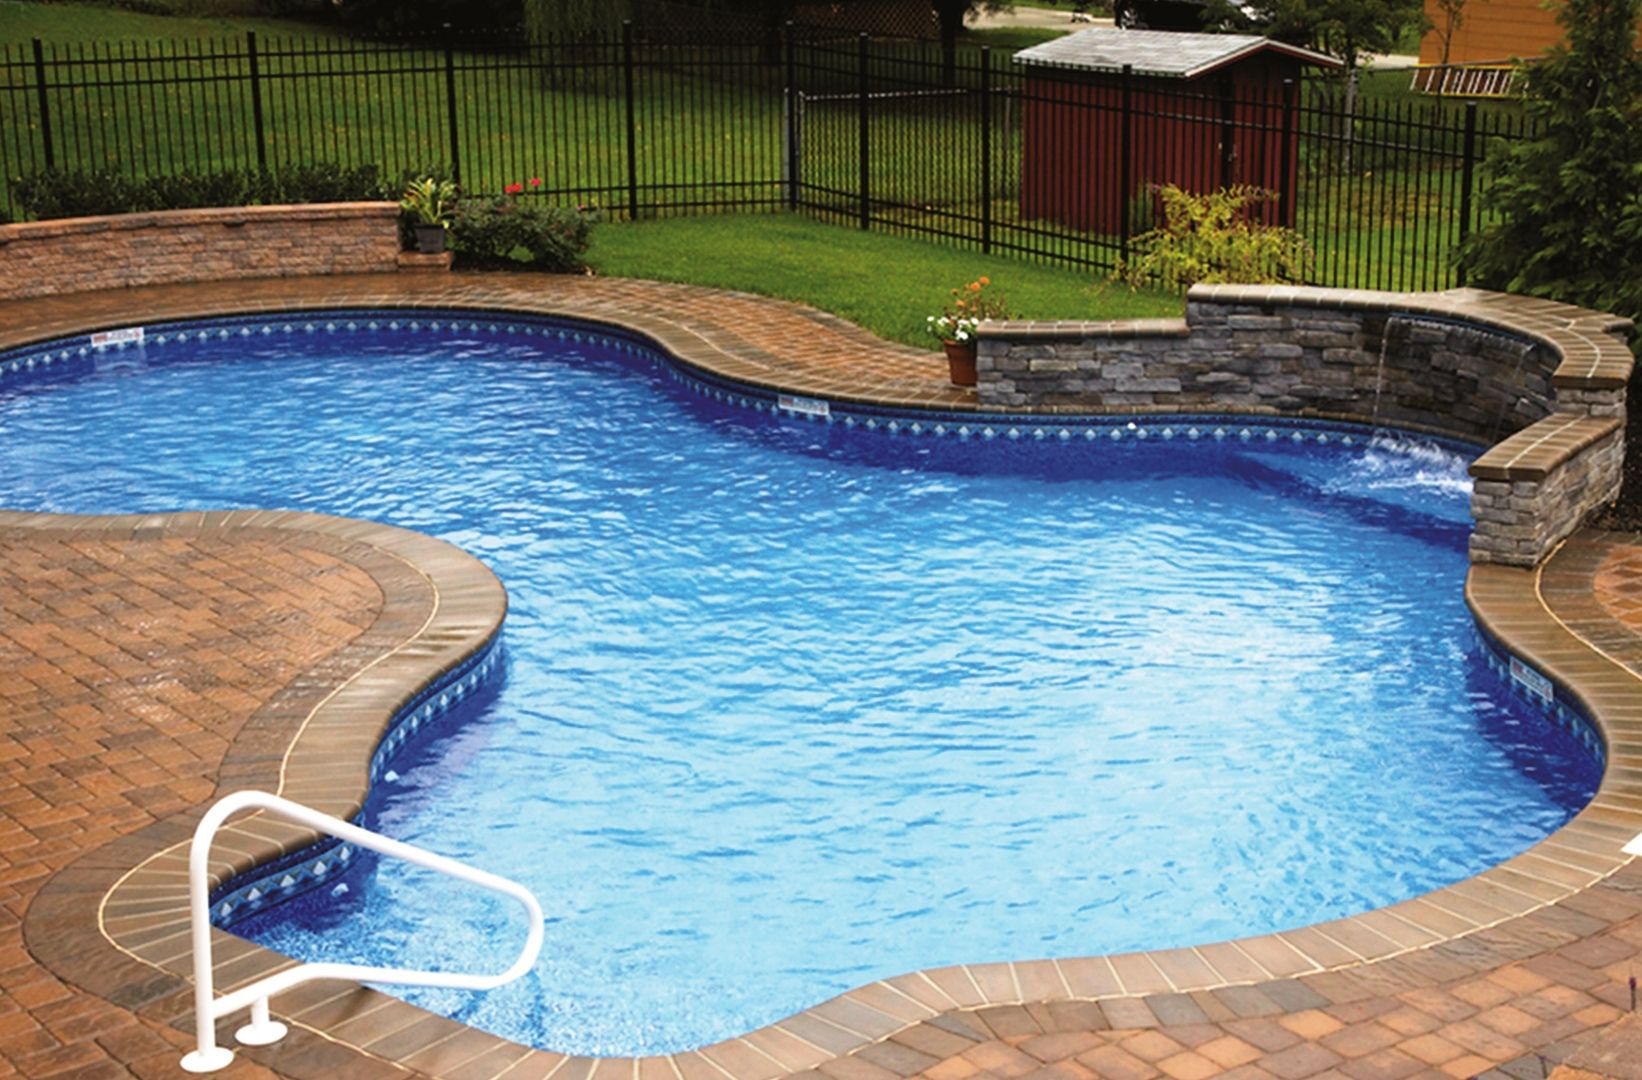 Back yard swimming pool ideas swimming pool design pinterest small backyard design - Design swimming pool ...